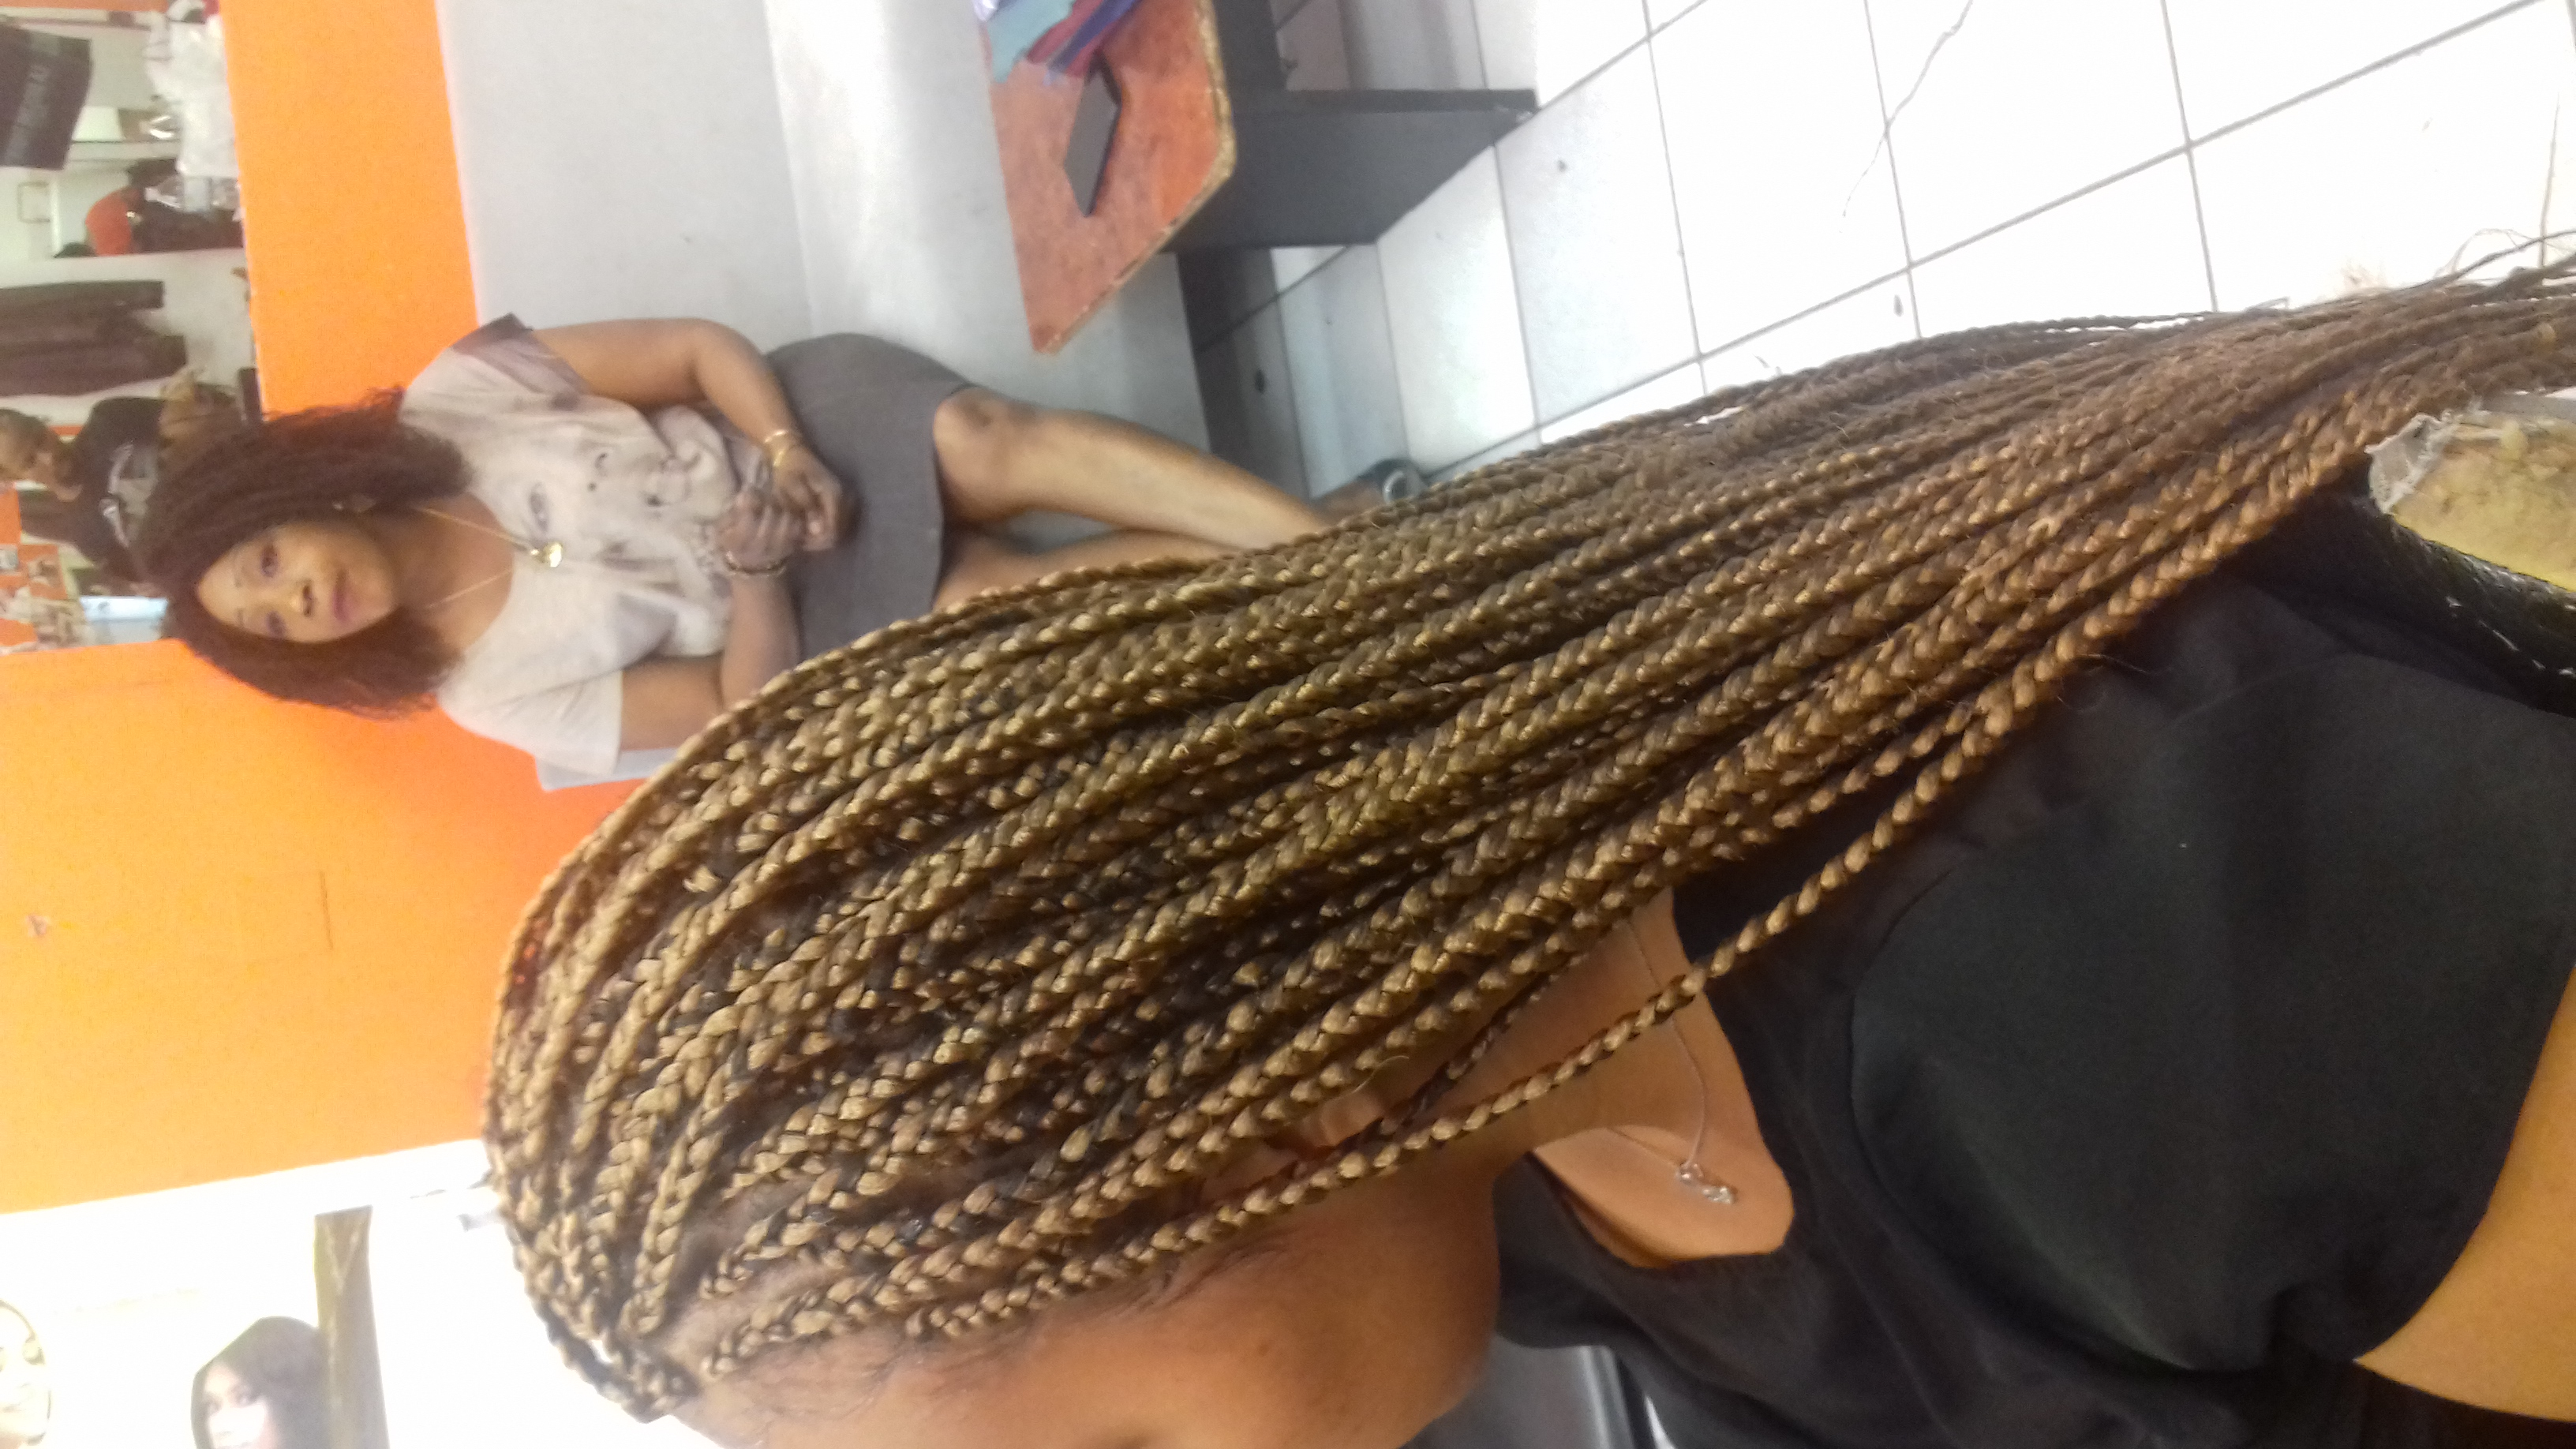 salon de coiffure afro tresse tresses box braids crochet braids vanilles tissages paris 75 77 78 91 92 93 94 95 ZAXTOHMD